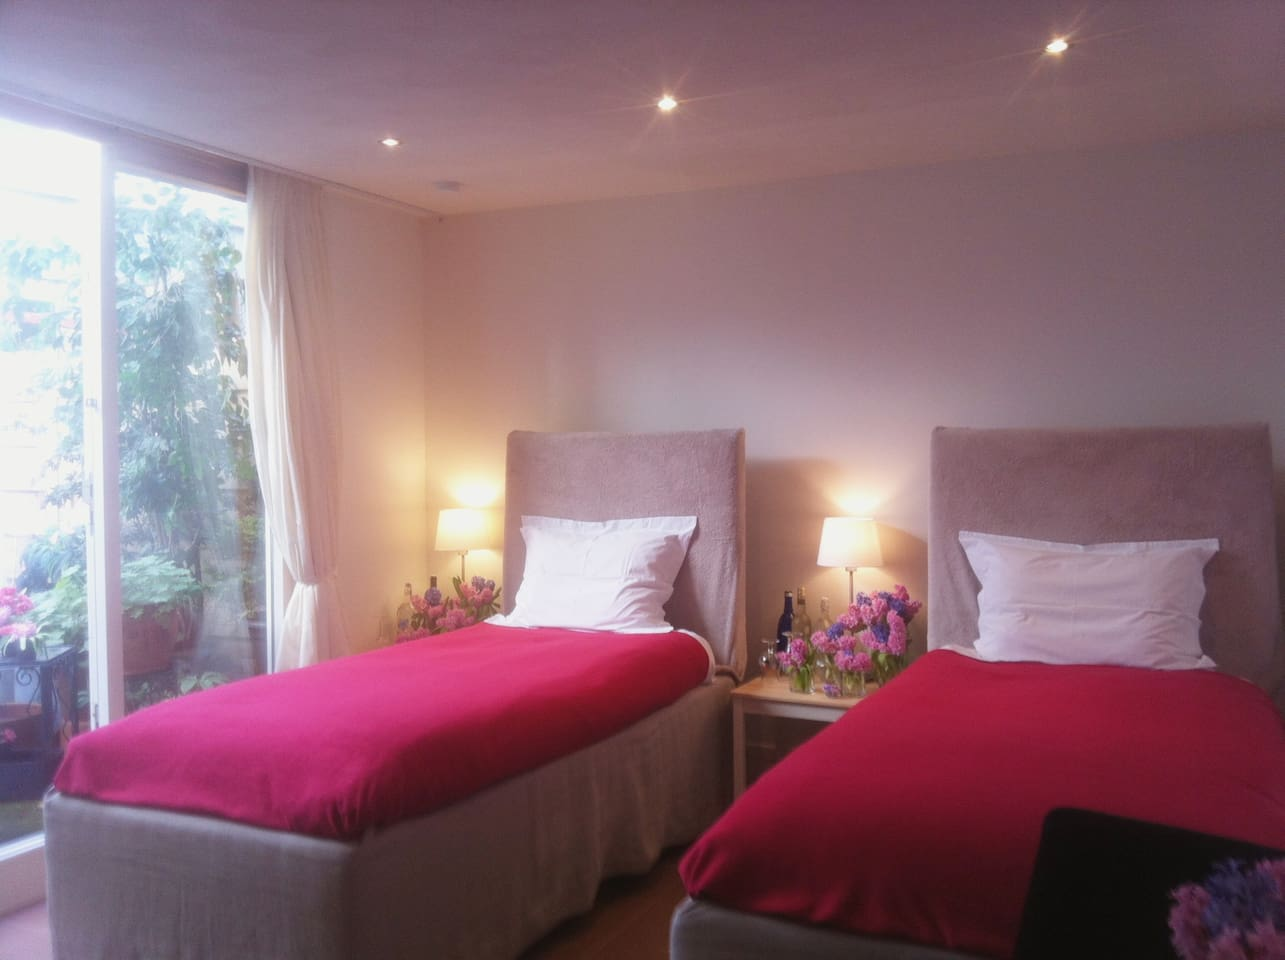 © * Luxury 5 star Hotel Beds! Top Notch! * Soft duvets & crispy pillow sheets. * Huge European Bedsize: * KING BED: 200/ 210   * Two TWIN Beds: 100/ 210 * Silent, clean, cosy room! *Private bathroom,toilet,toiletries  *Floor heated *Best sleep ever!